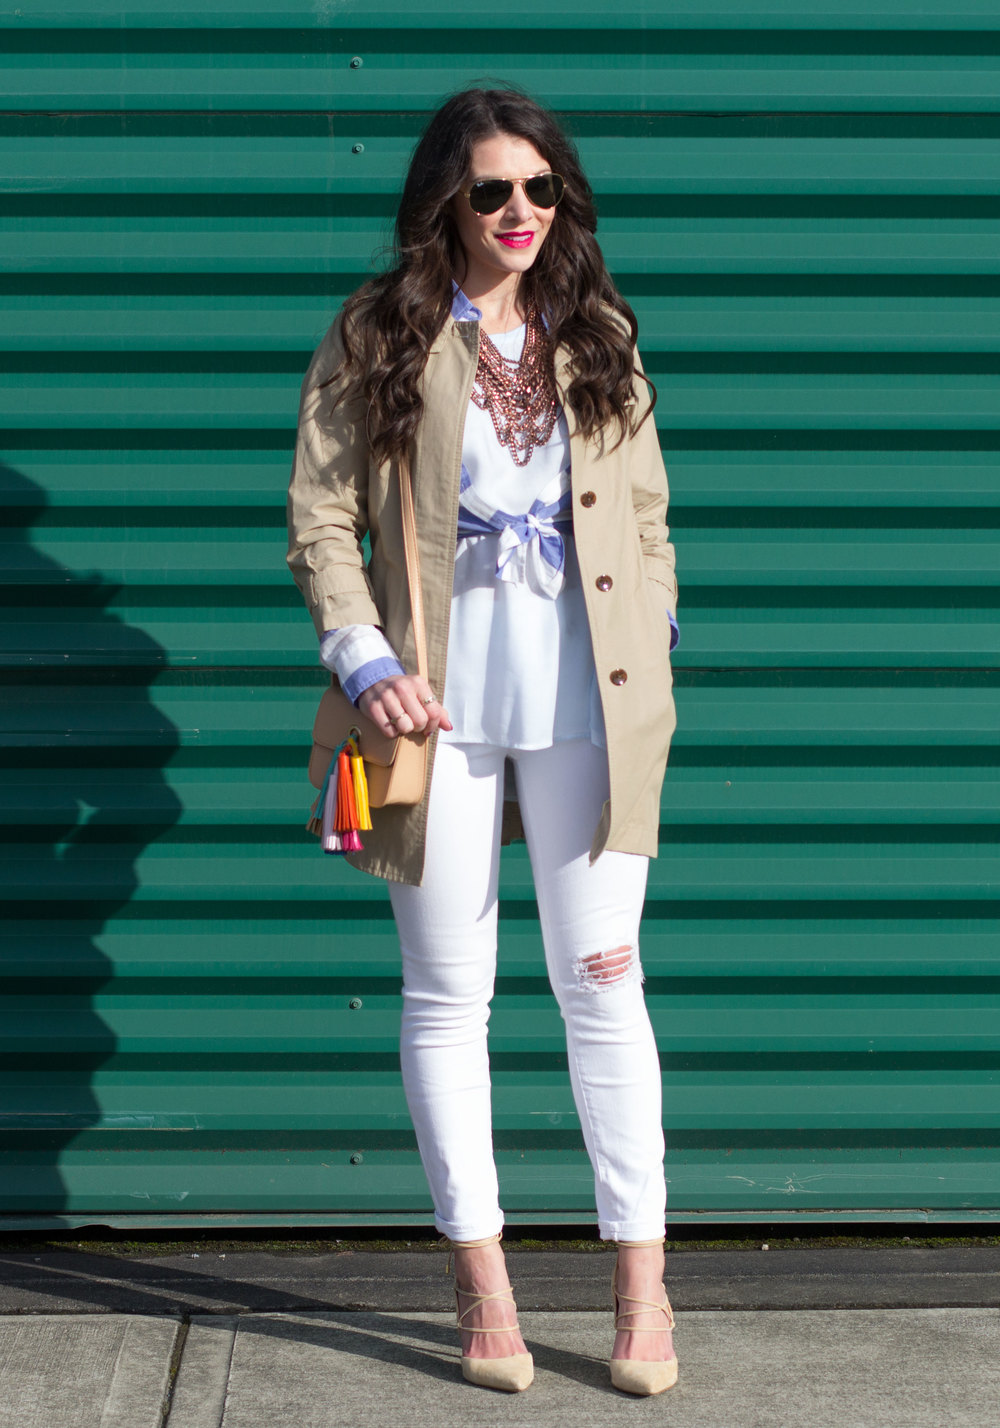 Spring Transitional Outfit, Banana Republic Trench Coat, Blue and White Stripe Shirt, High Low Layering Tank, Baublebar Courtney Bib Necklace, DIY Rebecca Minkoff Sofia Handbag, and Sam Edelman Dayna